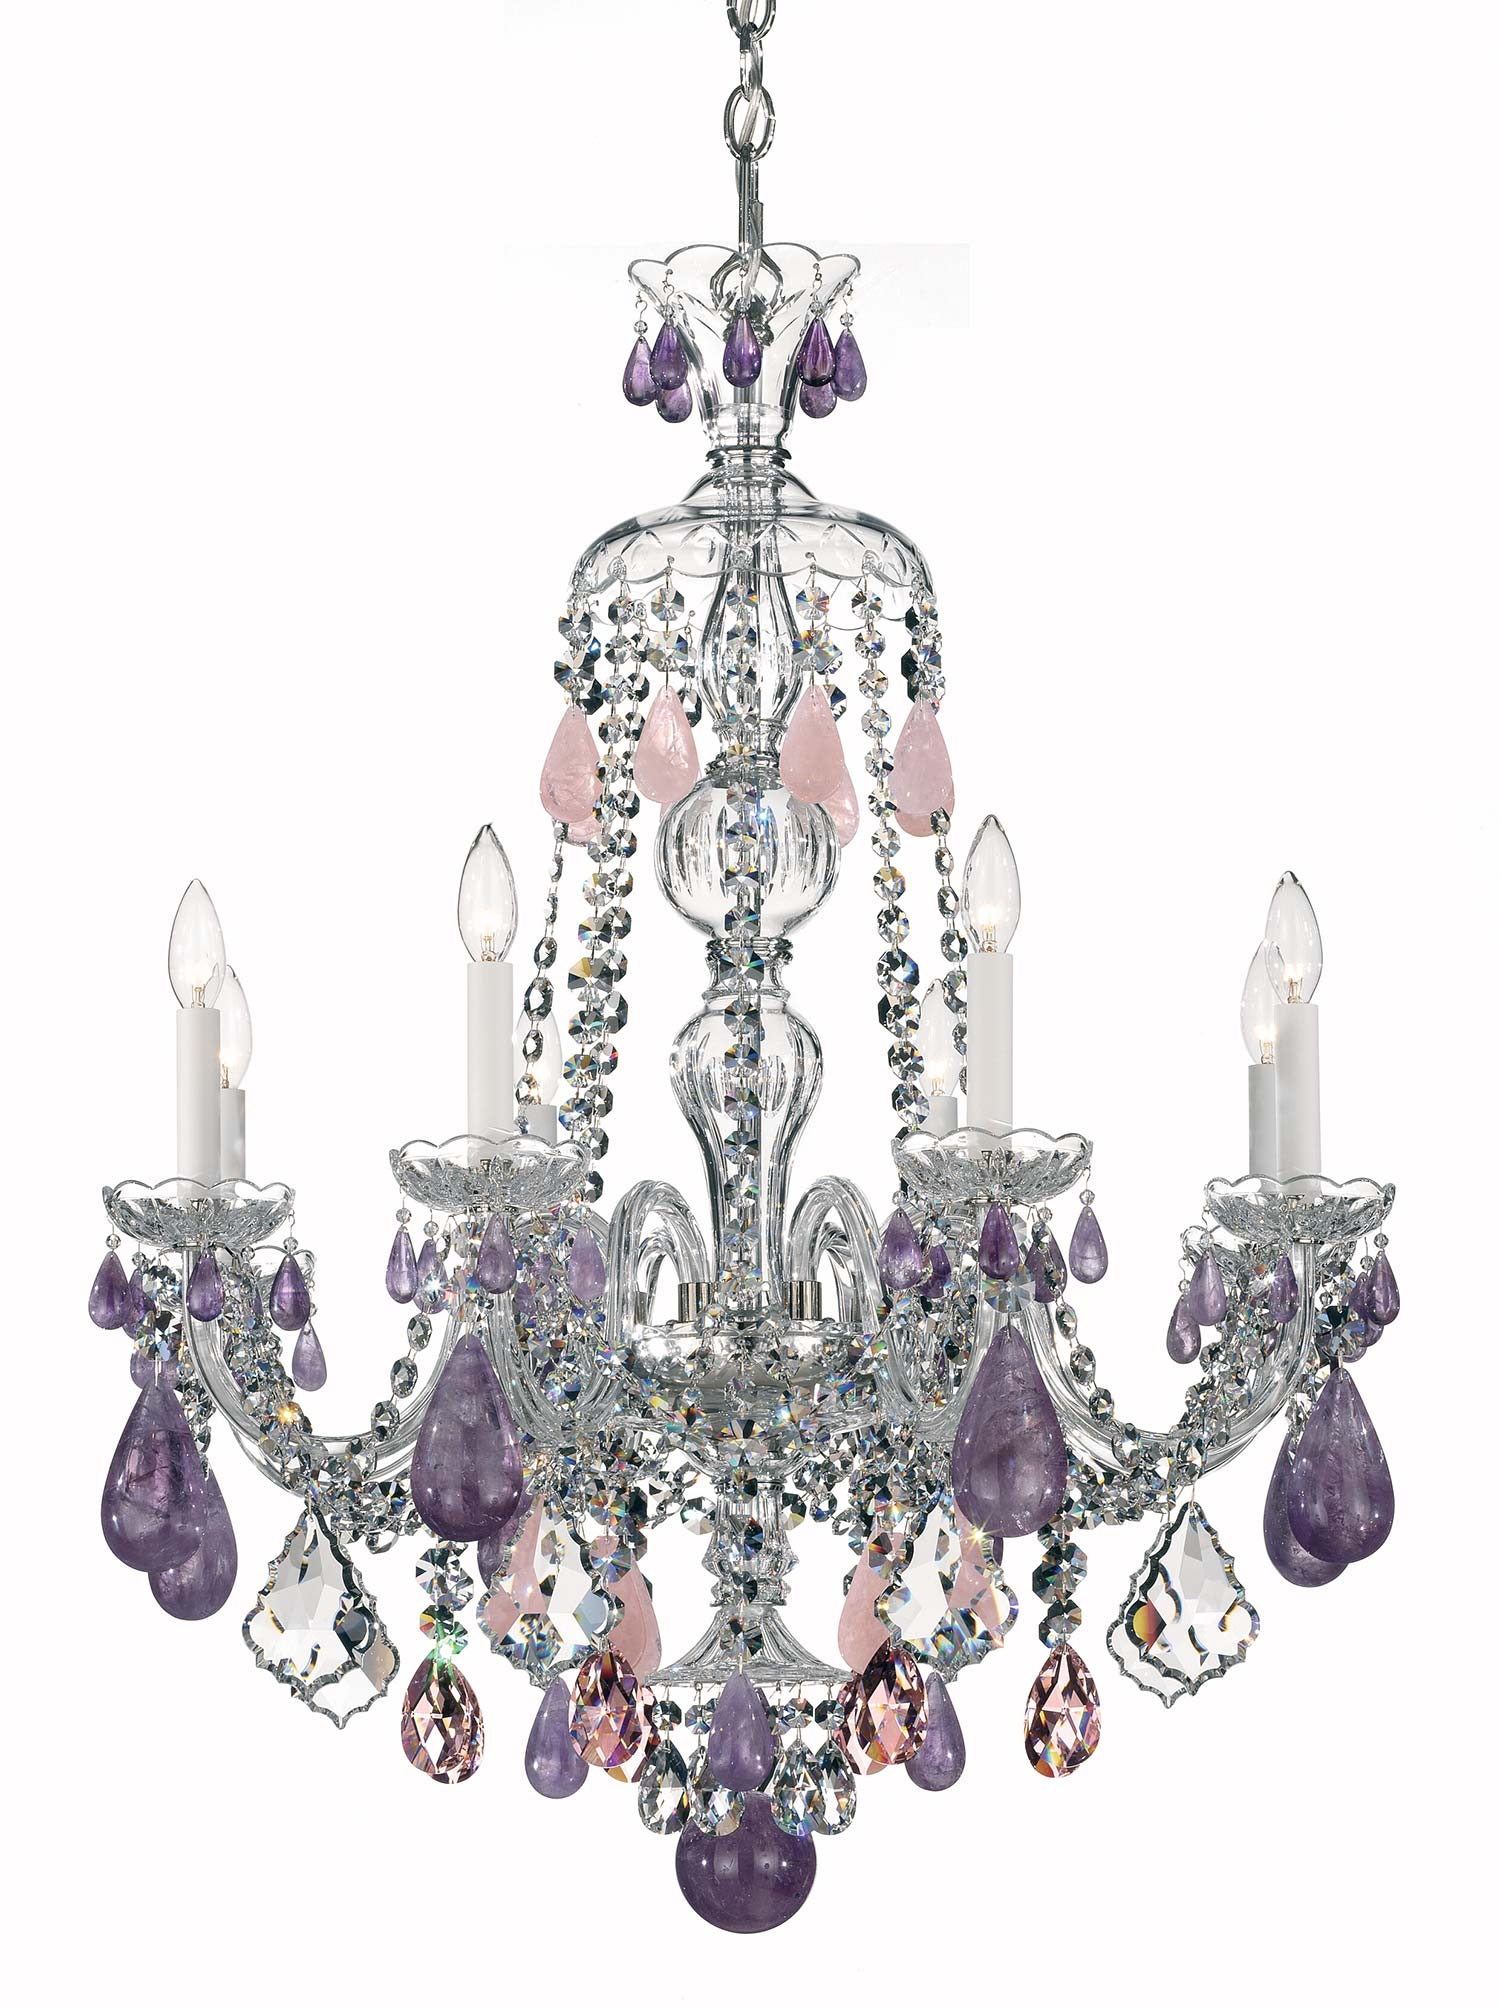 Schonbek 5537 Hamilton Rock Crystal Collection Chandelier Crystal Throughout Purple Crystal Chandelier Lighting (Image 24 of 25)